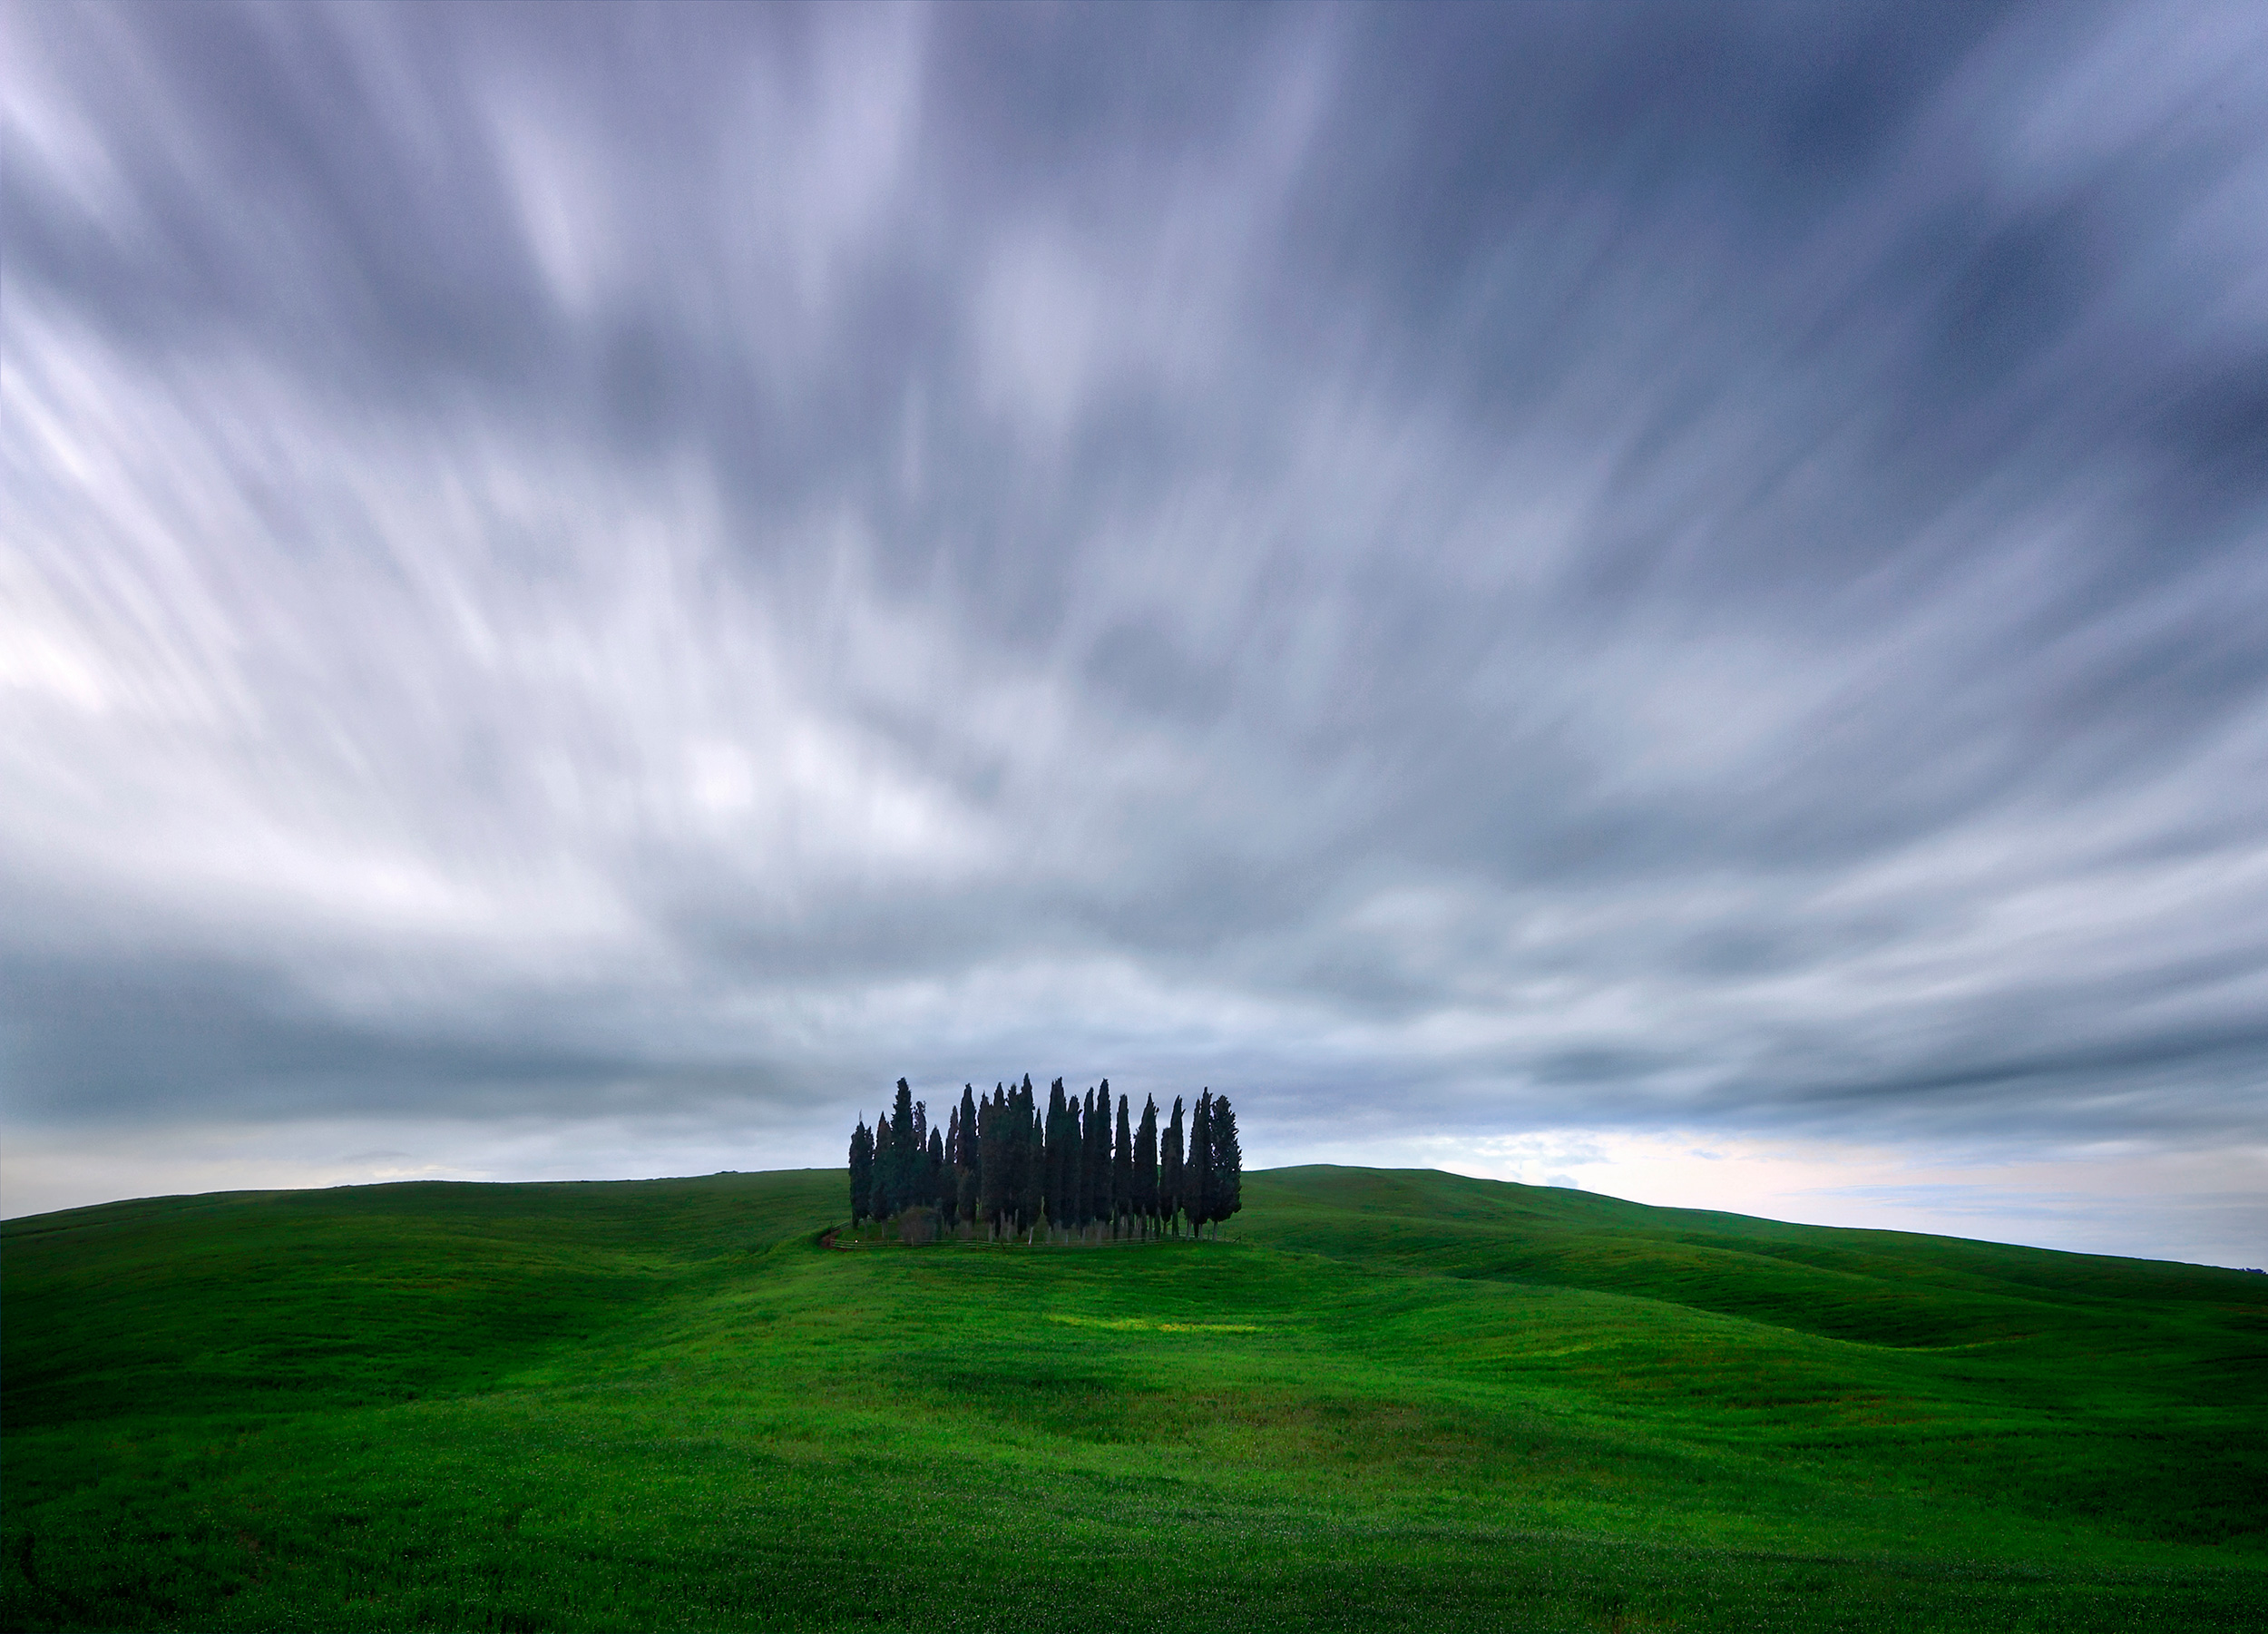 Cypress trees of San Quirico d'Orcia - Valdorcia, Tuscany, Italy